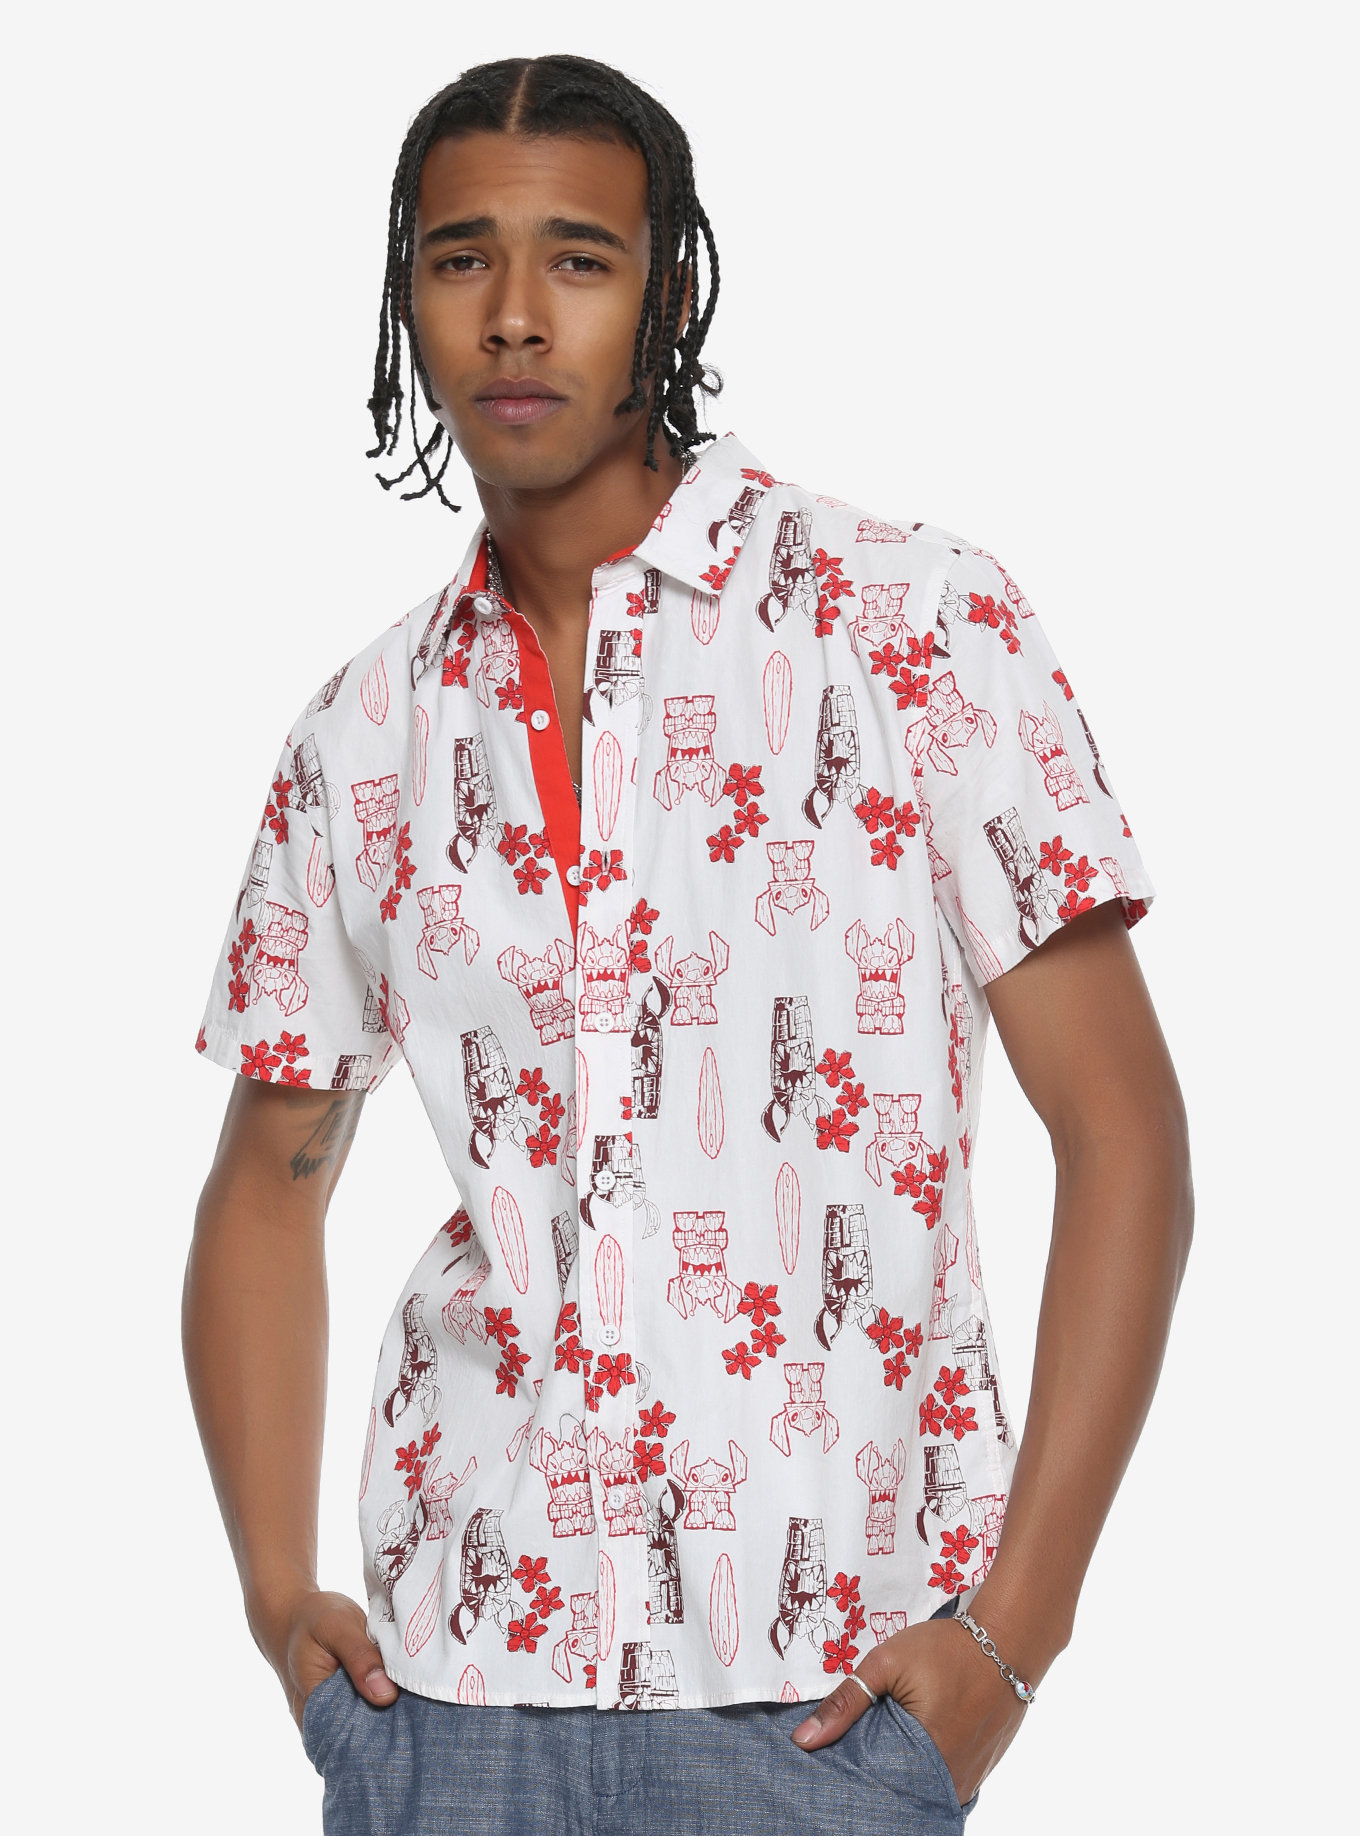 d1ab2079 2Our Universe Disney Lilo & Stitch Tiki Short-Sleeve Woven Button-Up,  $39.90 – $41.